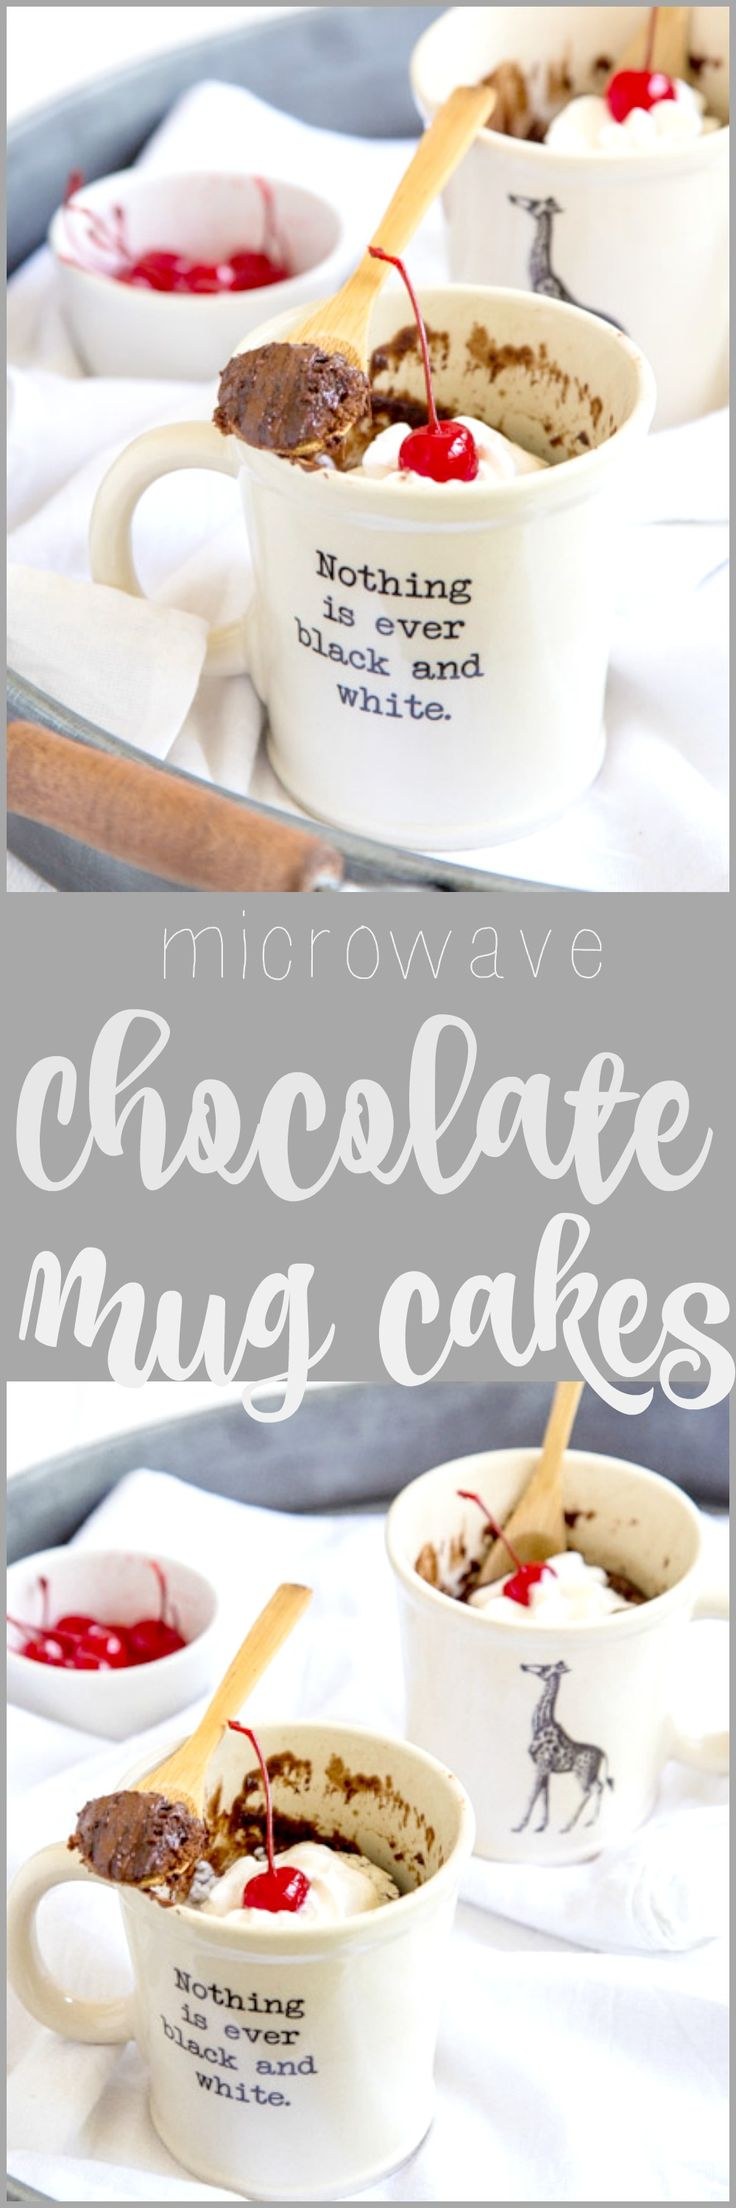 The BEST recipe for microwave chocolate mug cakes. You don't really need anything else in life if you have these babies.